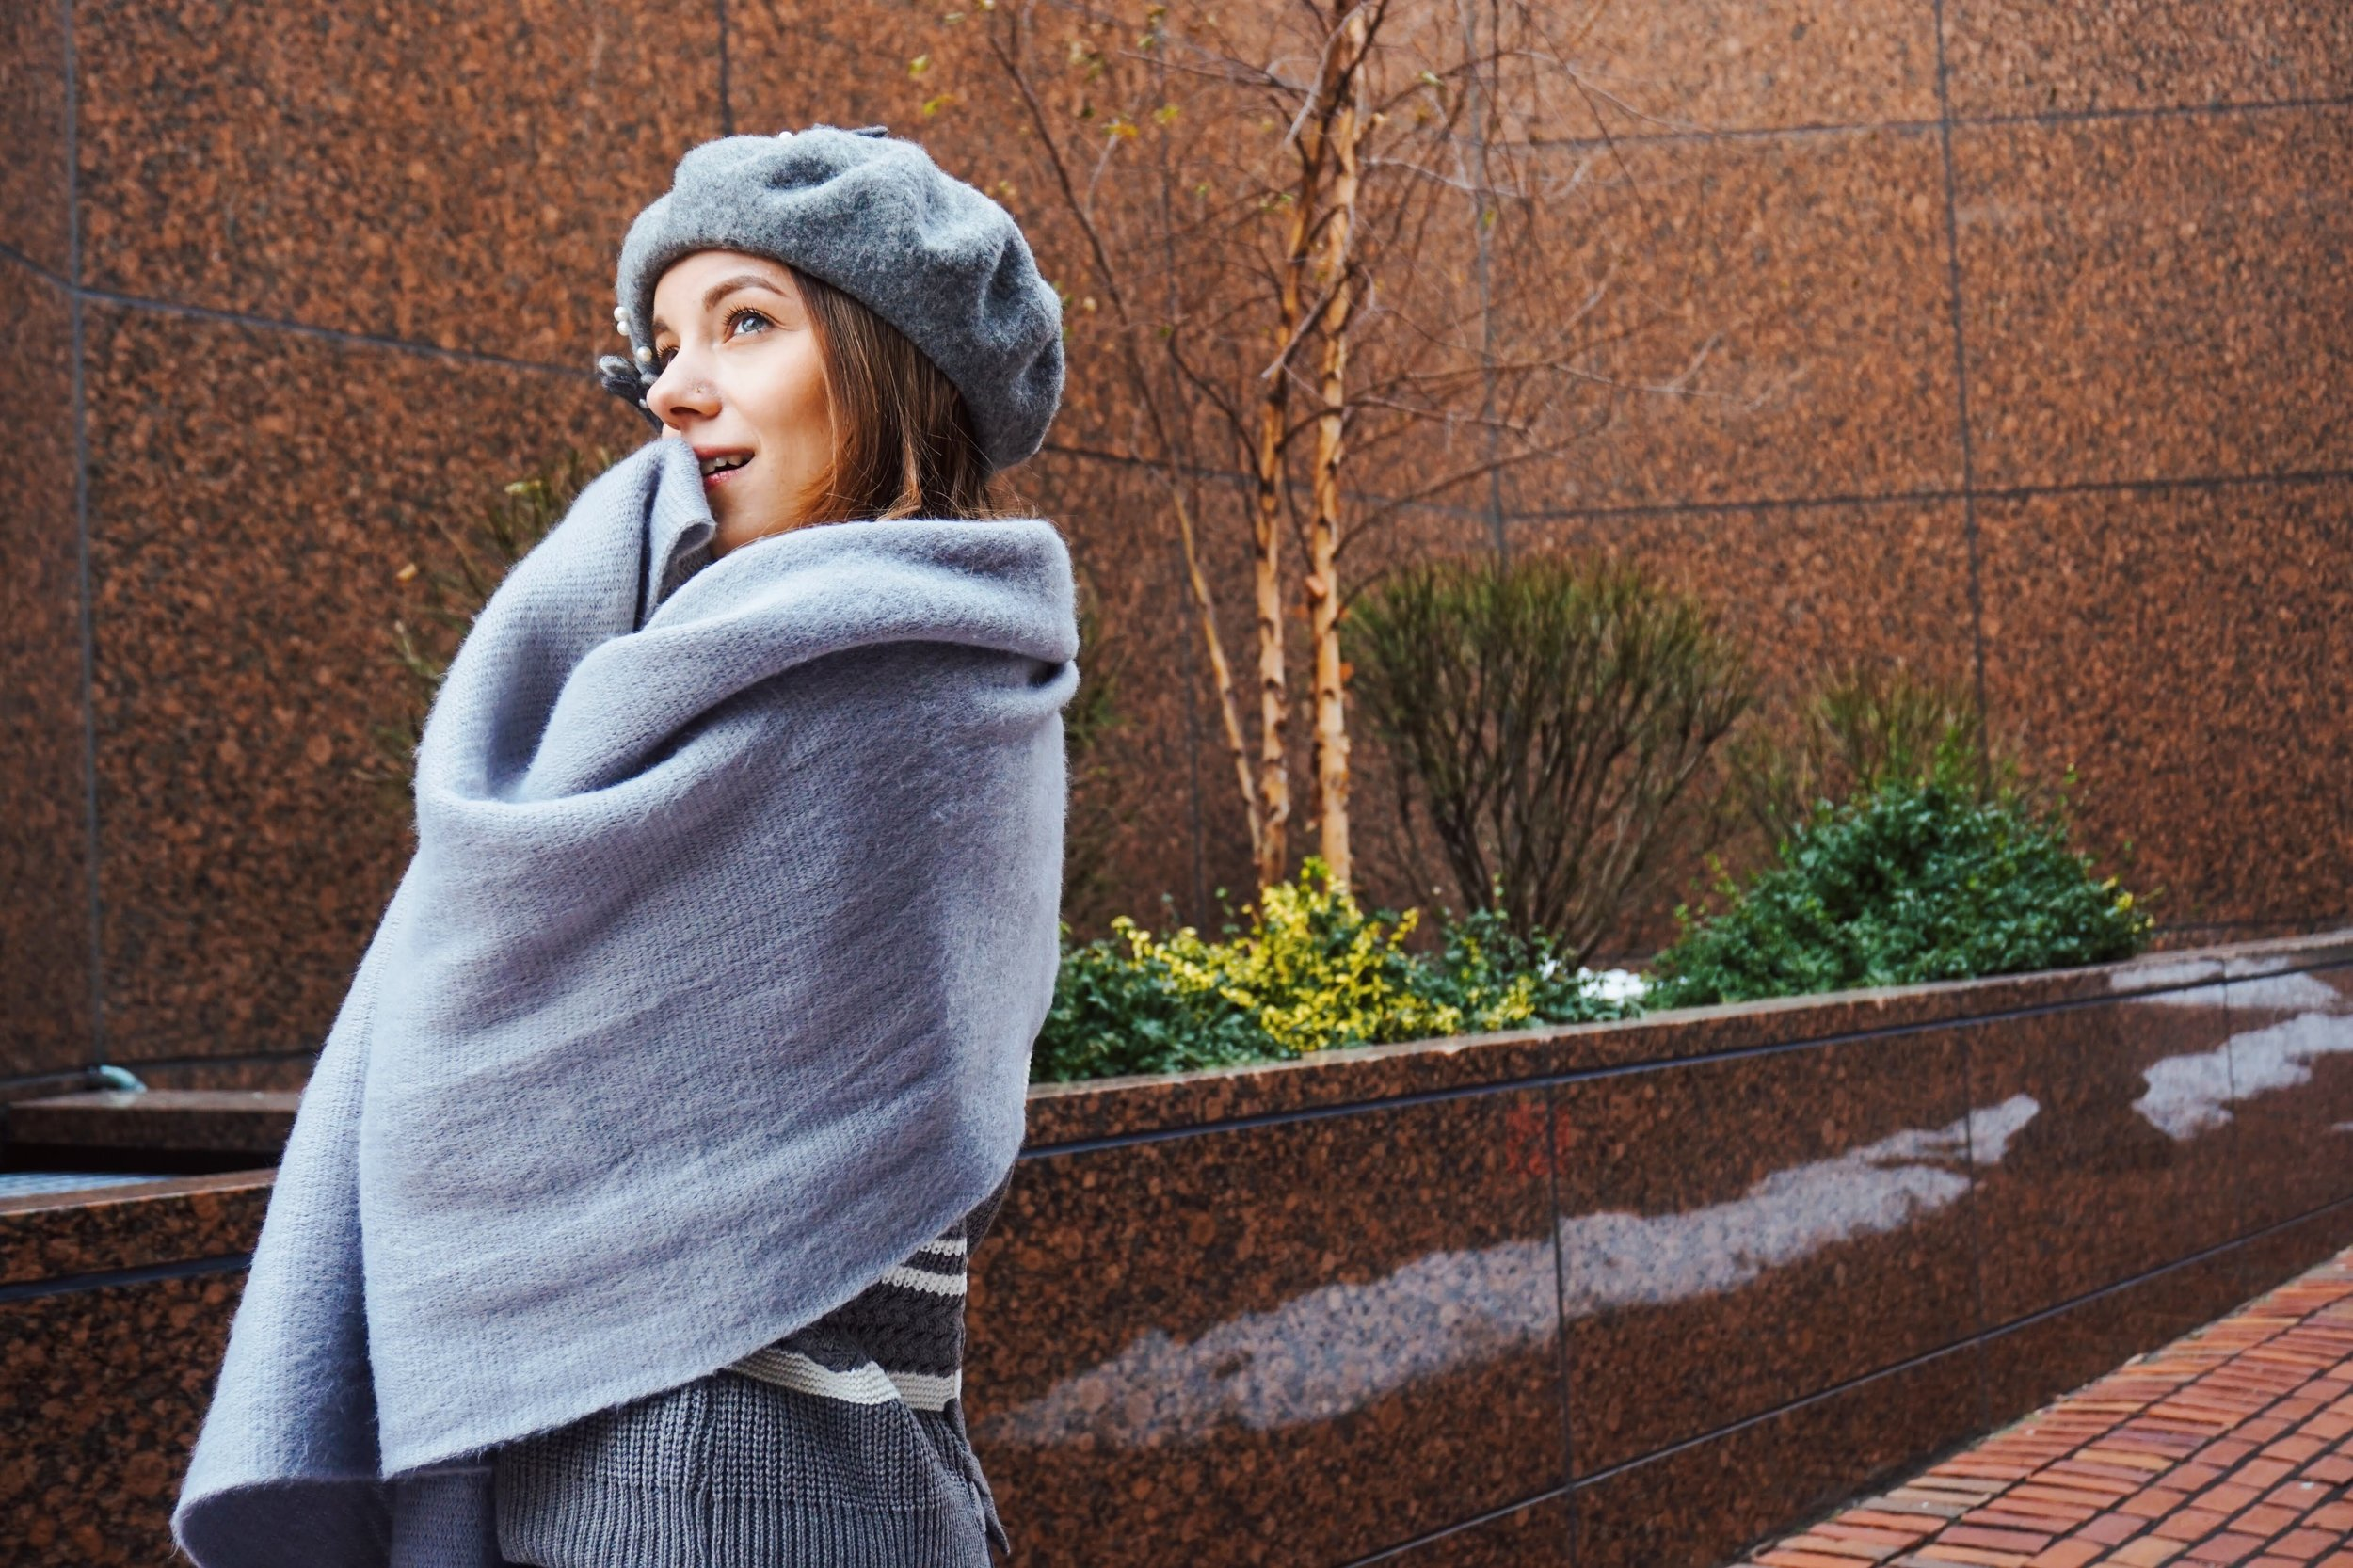 Blogger looking up, wrapped around in a gray sweater, wearing gray beret on her head.